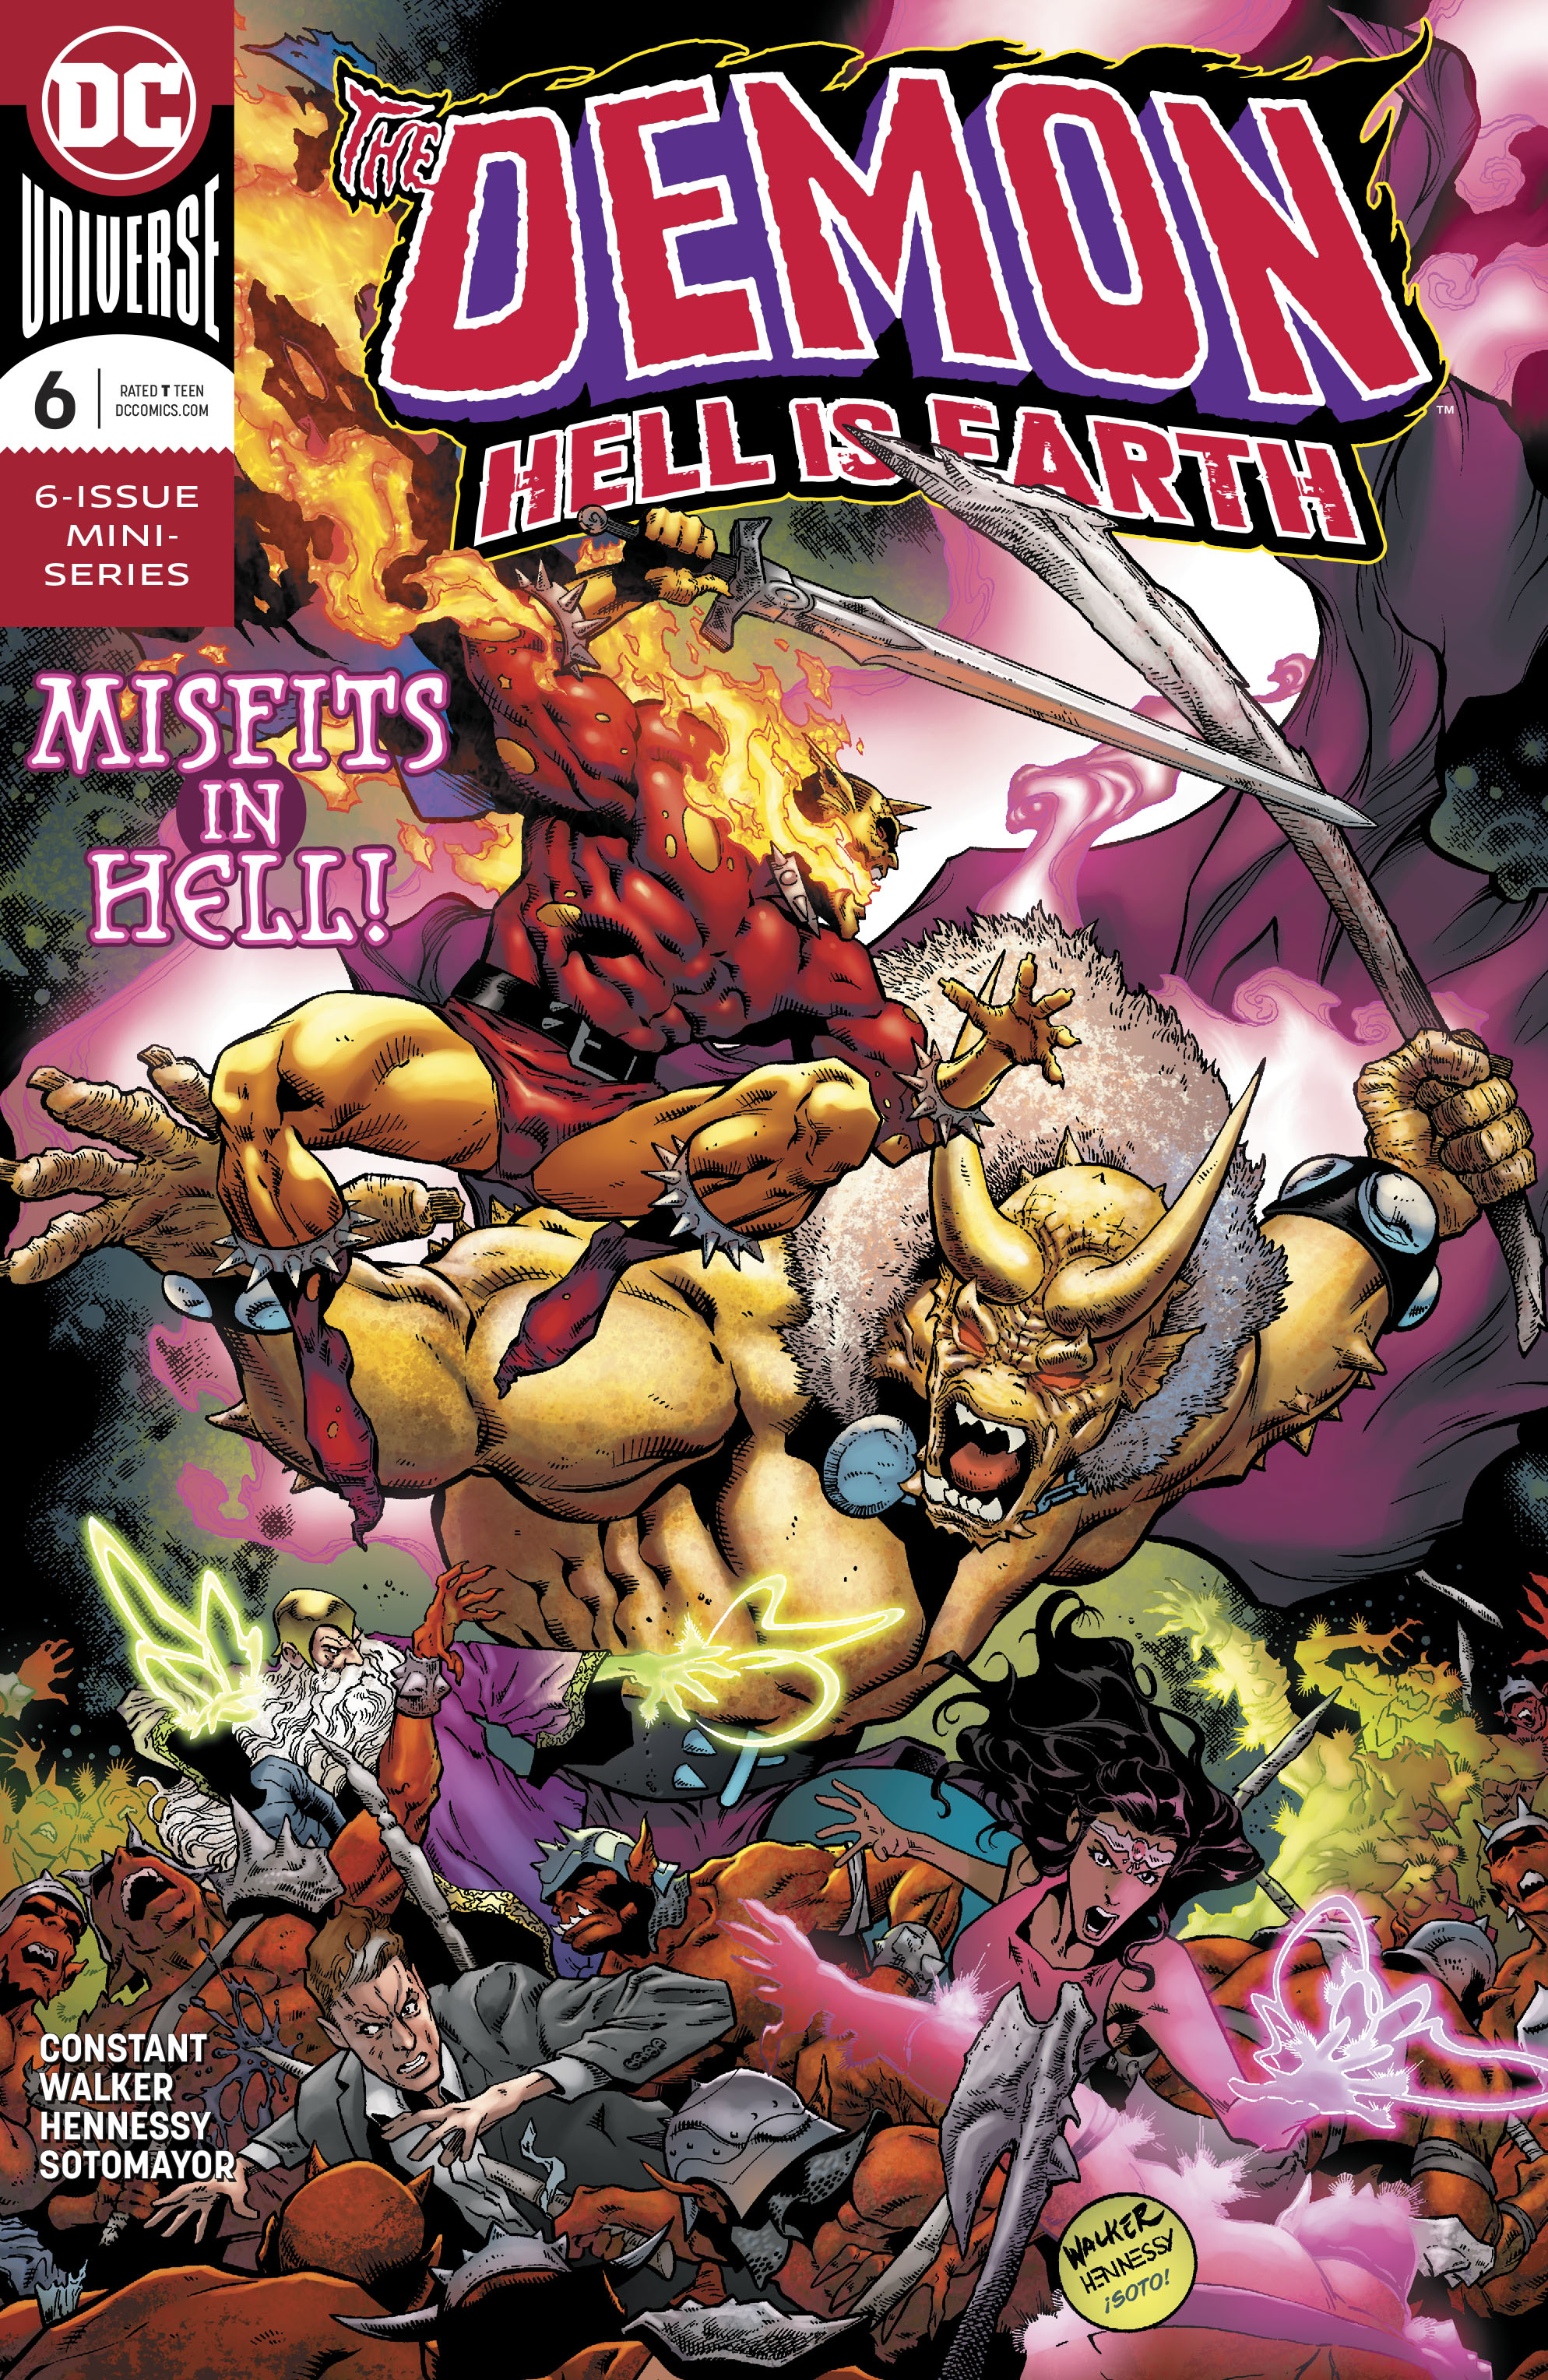 DEMON HELL IS EARTH #6